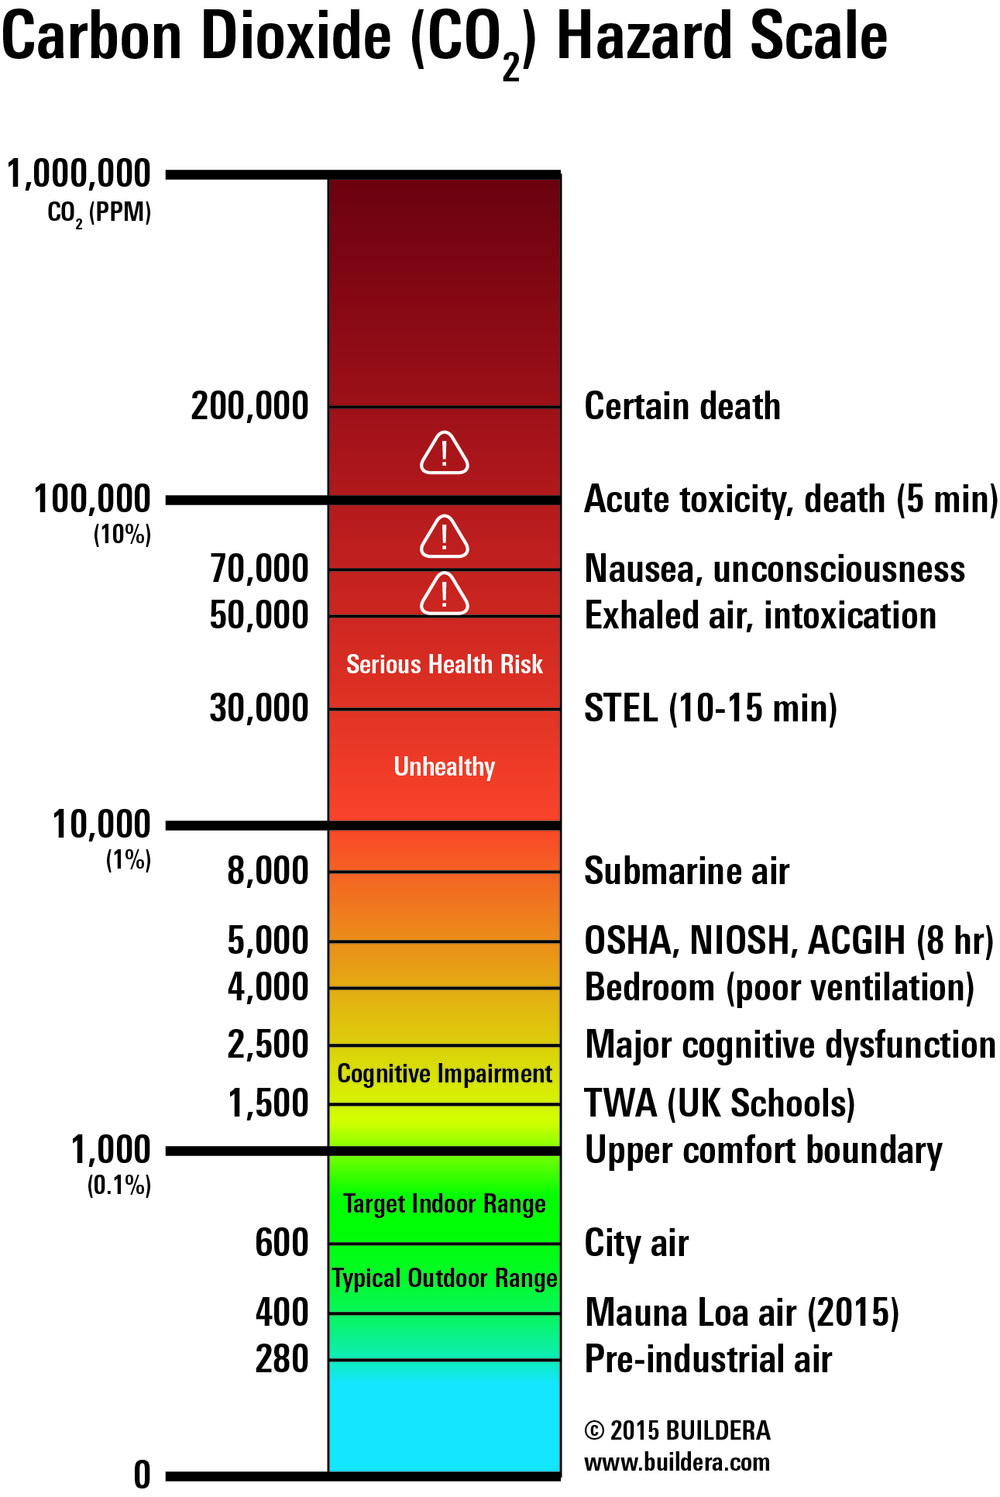 carbon-dioxide-co2-hazard-scale.jpg